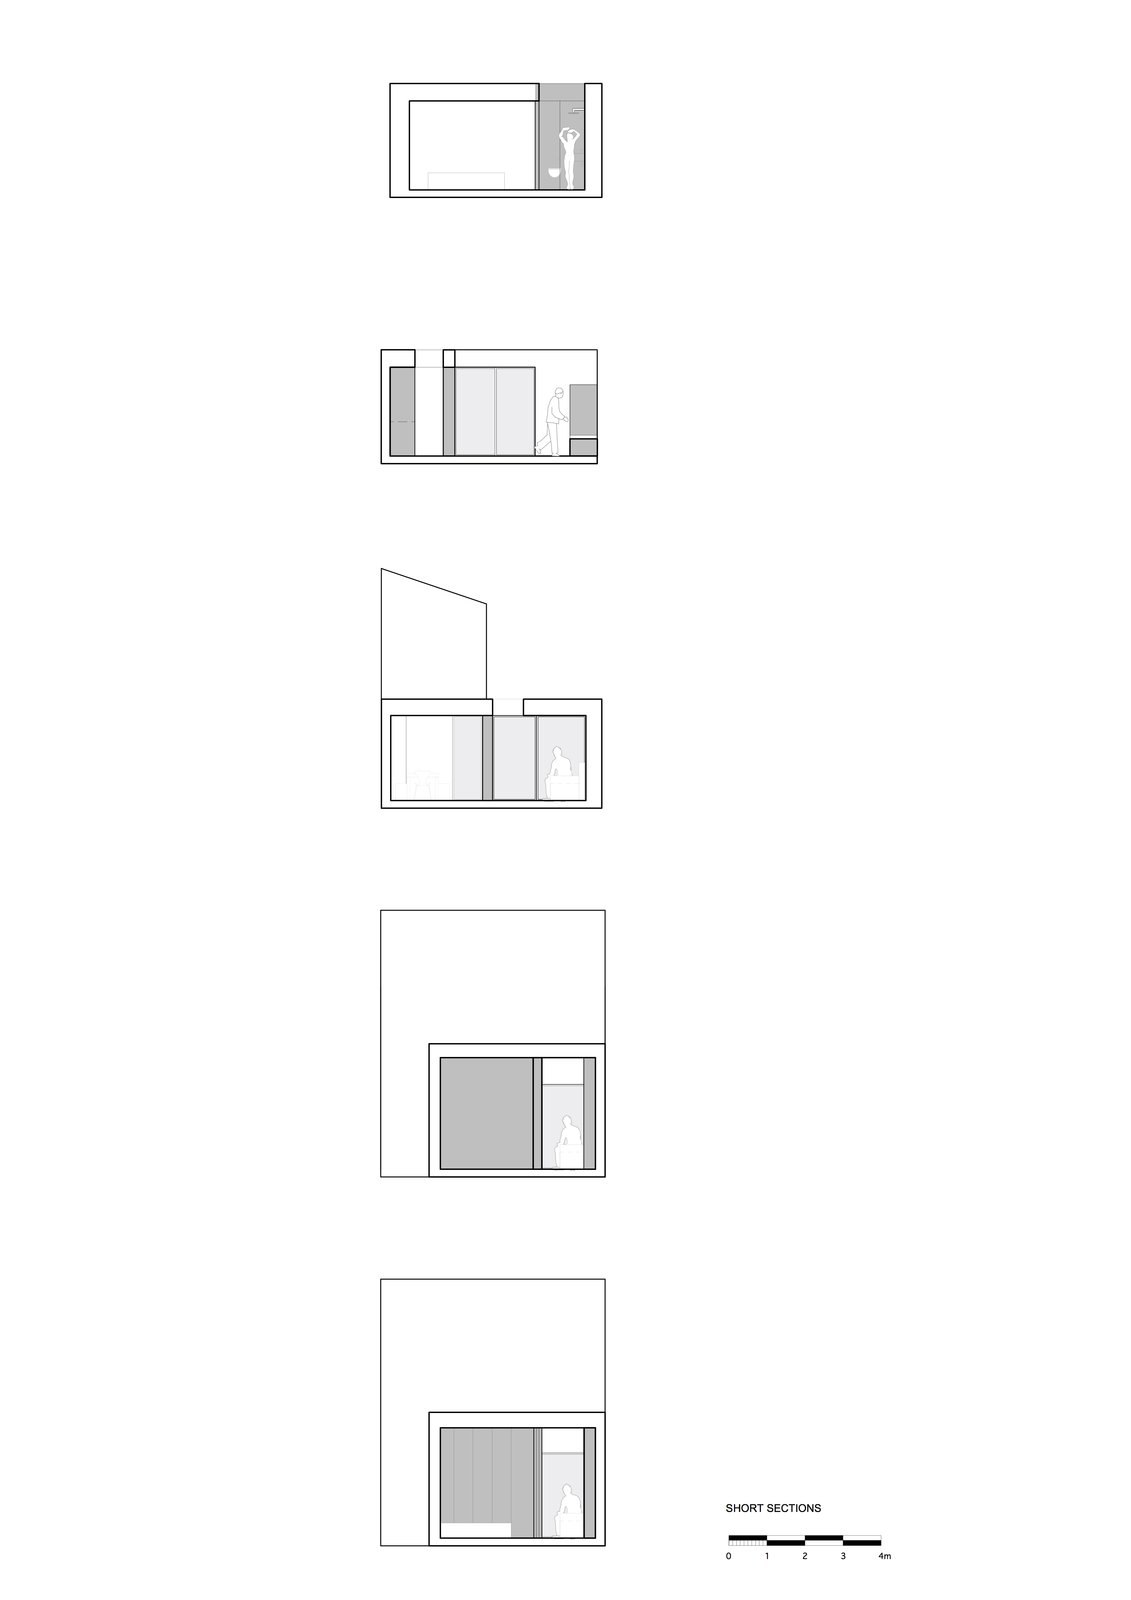 As one moves from the front to the back of the scheme, one experiences the compression and expansion of space vertically and horizontally.  Unité de Rénovation